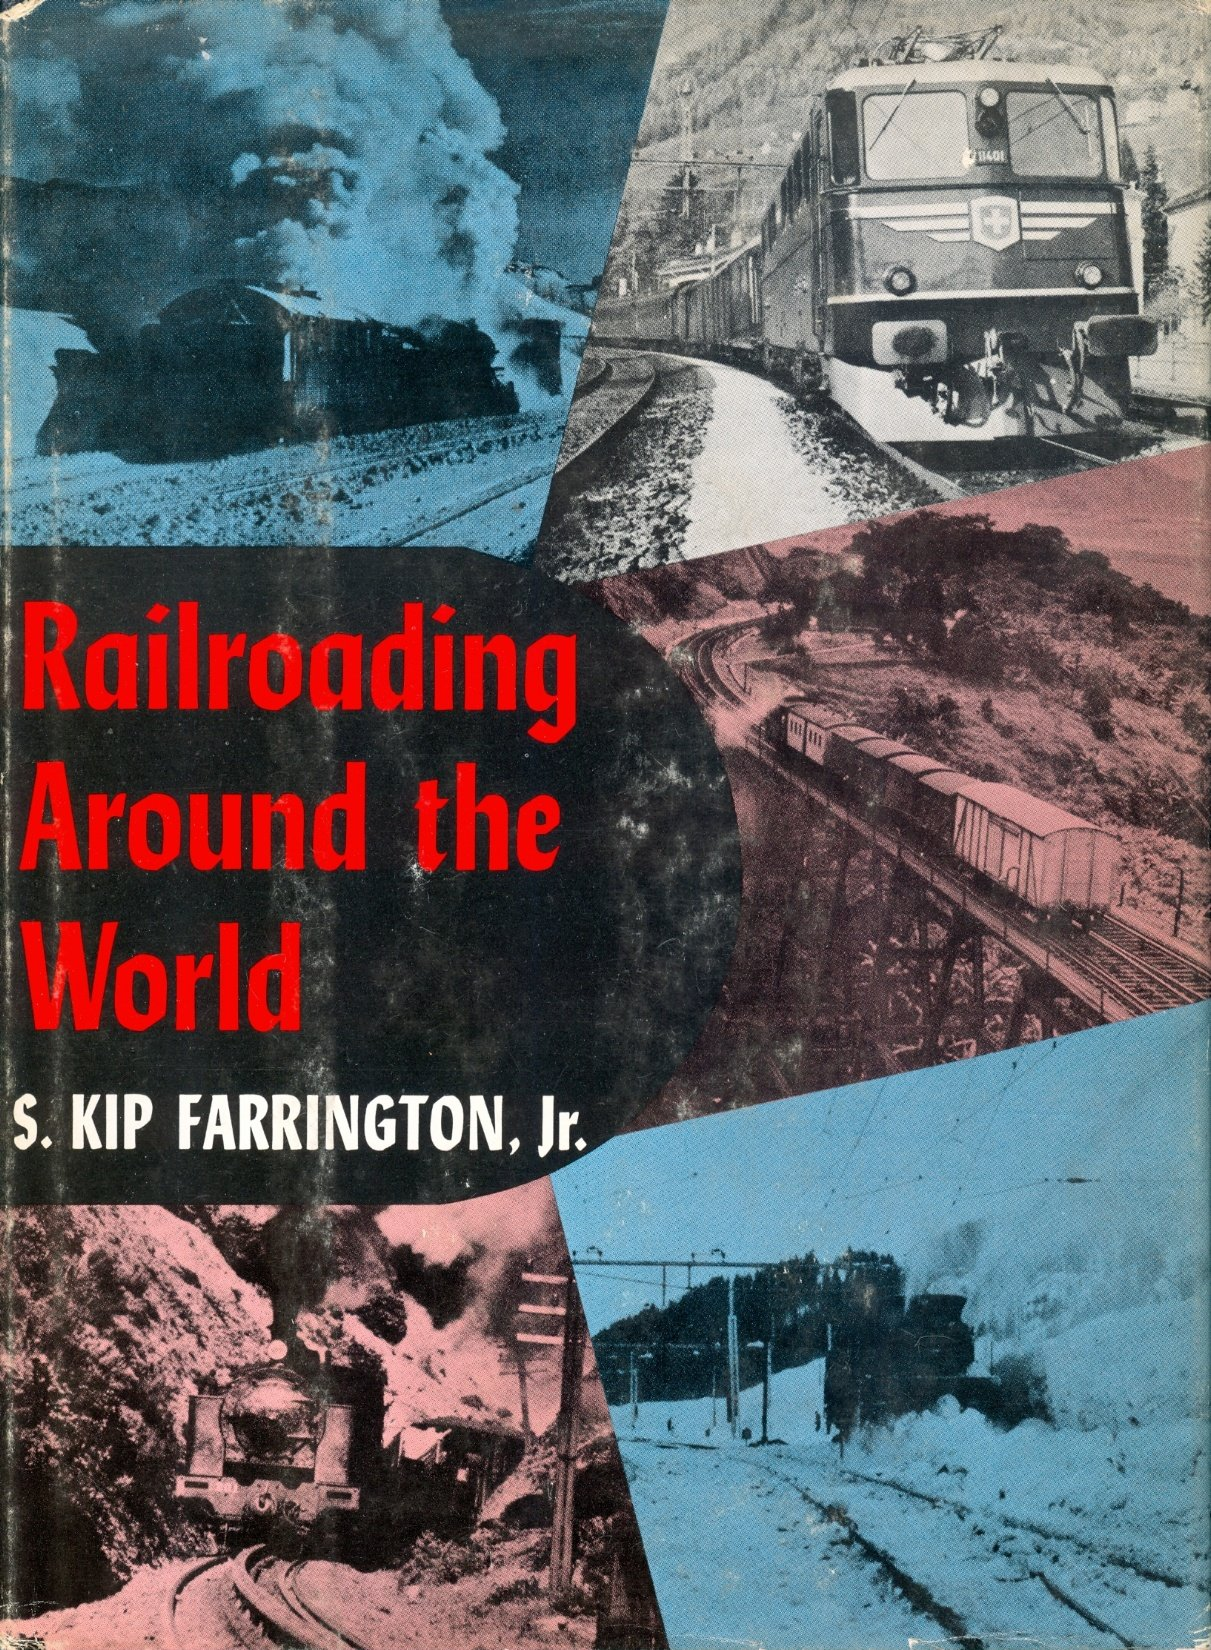 Railroading Around the World., FARRINGTON, S. KIP JR.